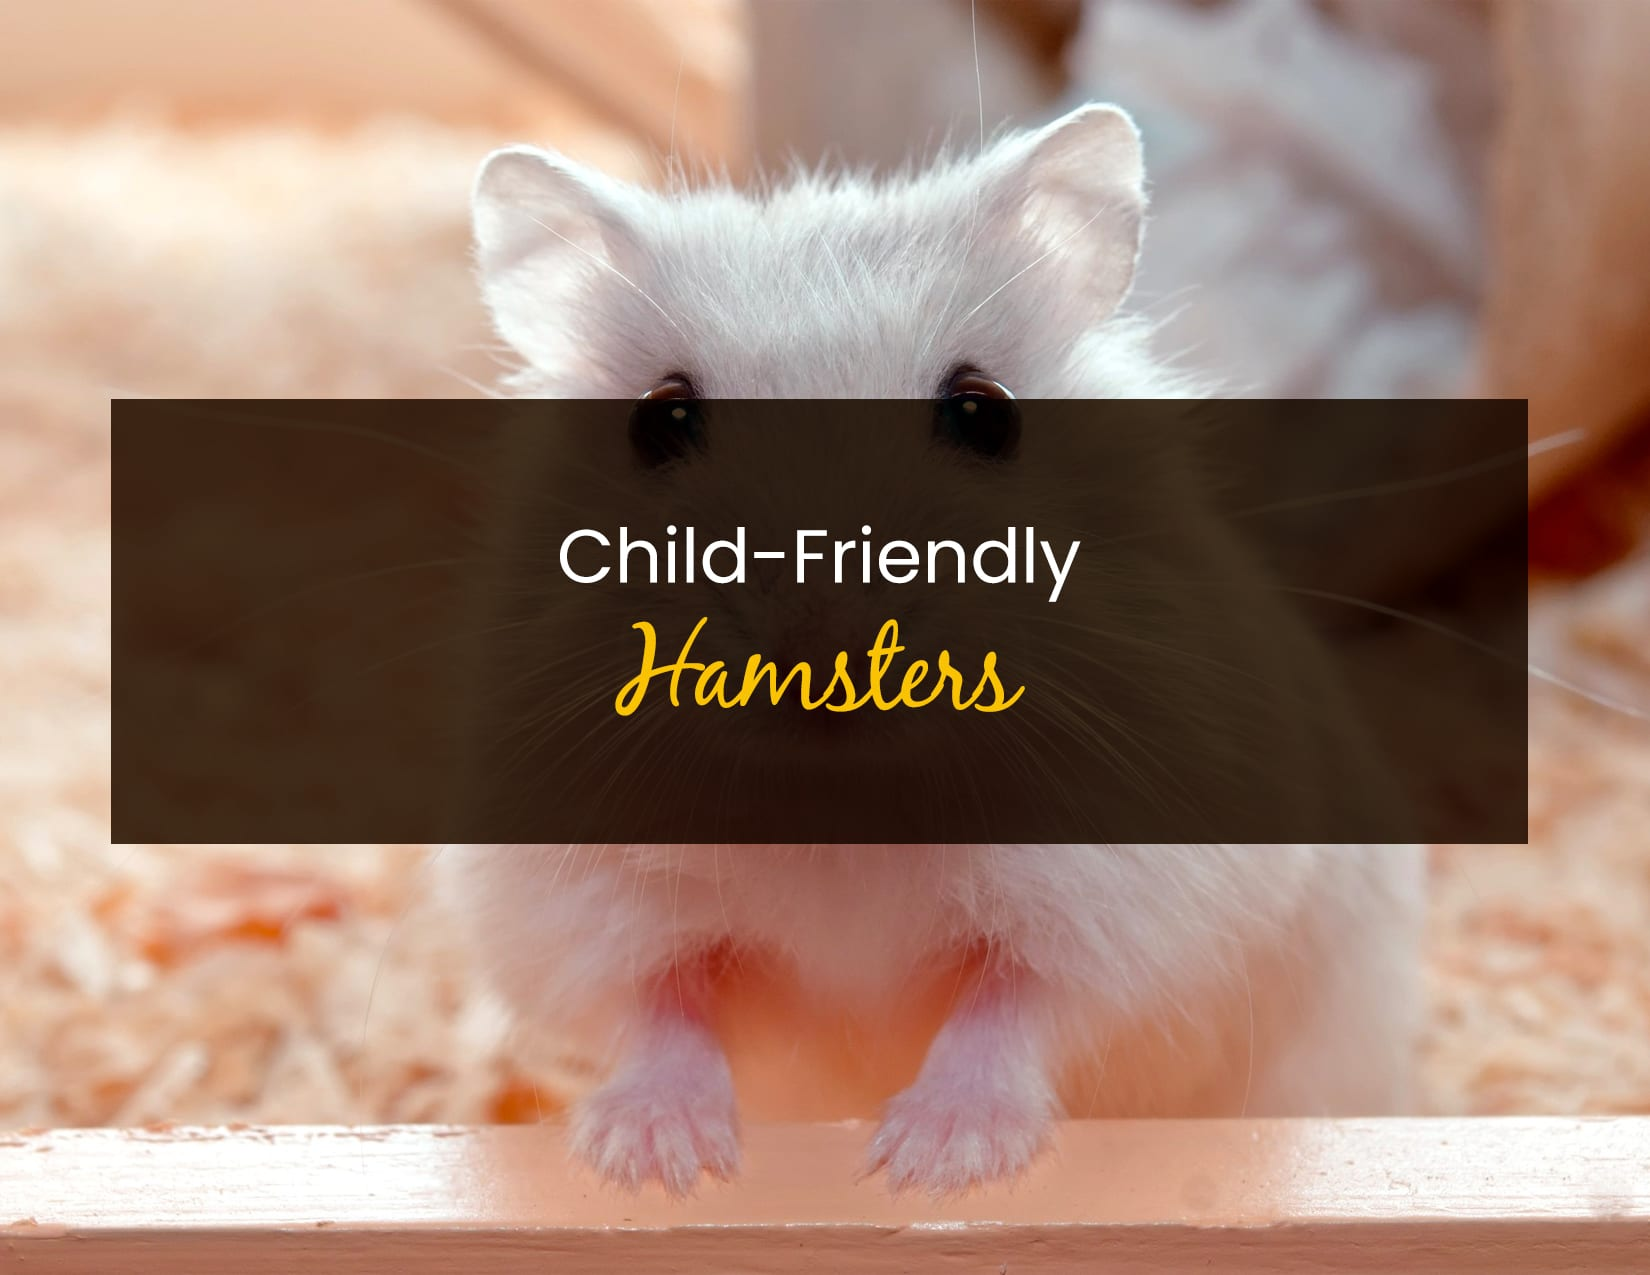 Child-Friendly Hamsters - WP